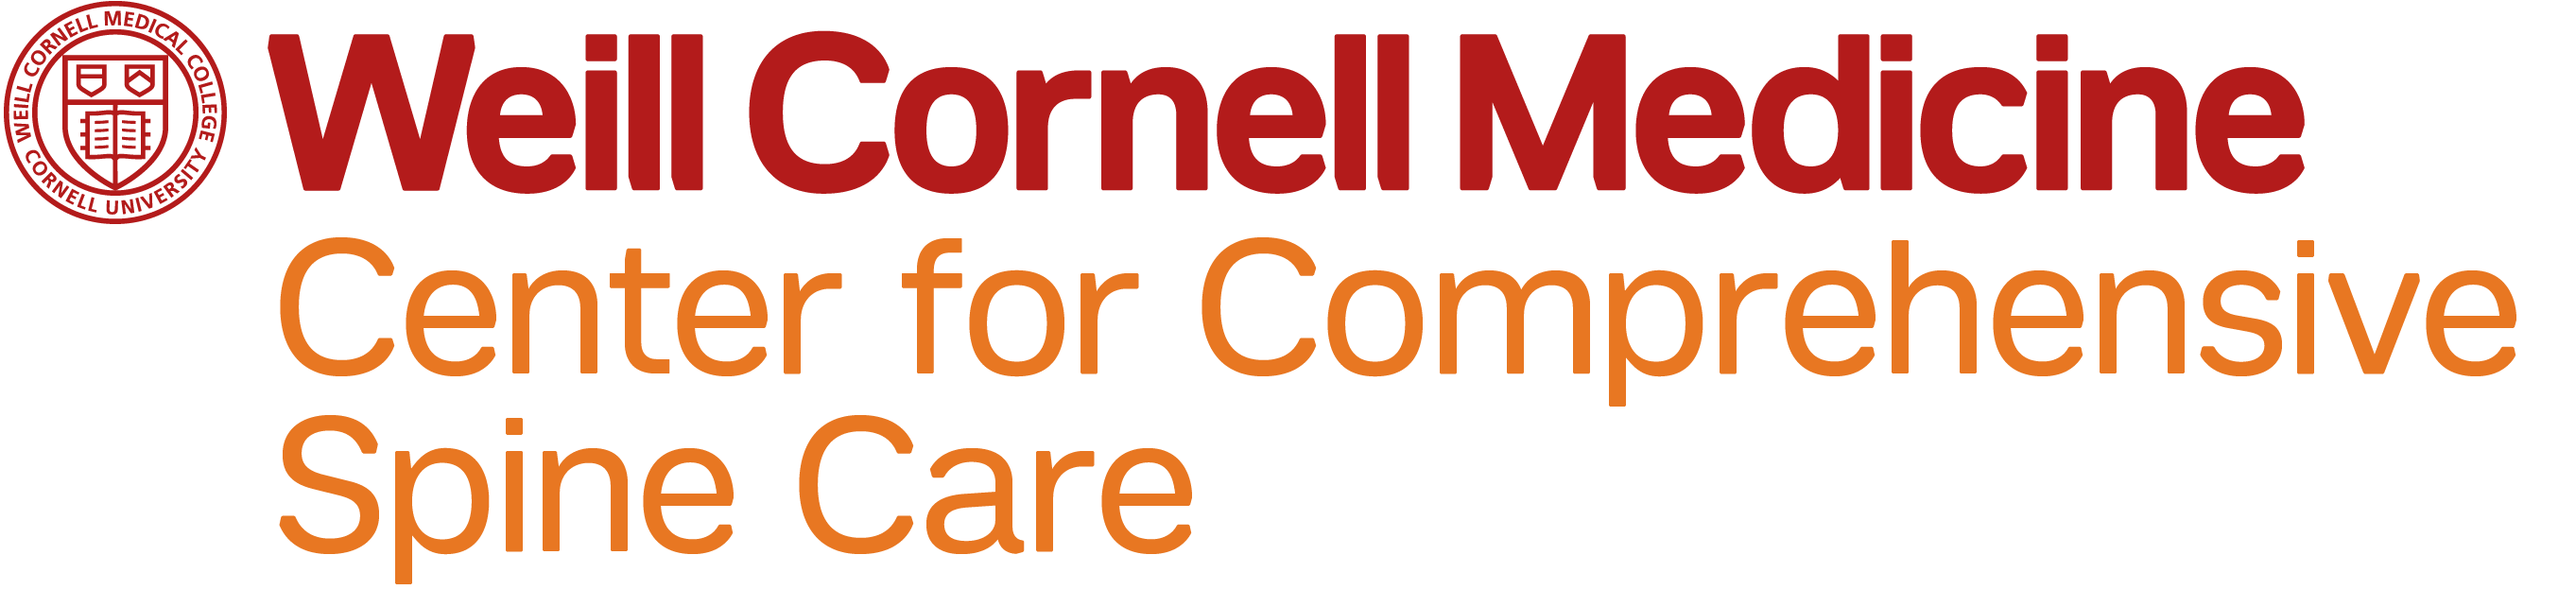 Weill Cornell Medicine Center for Comprehensive Spine Care